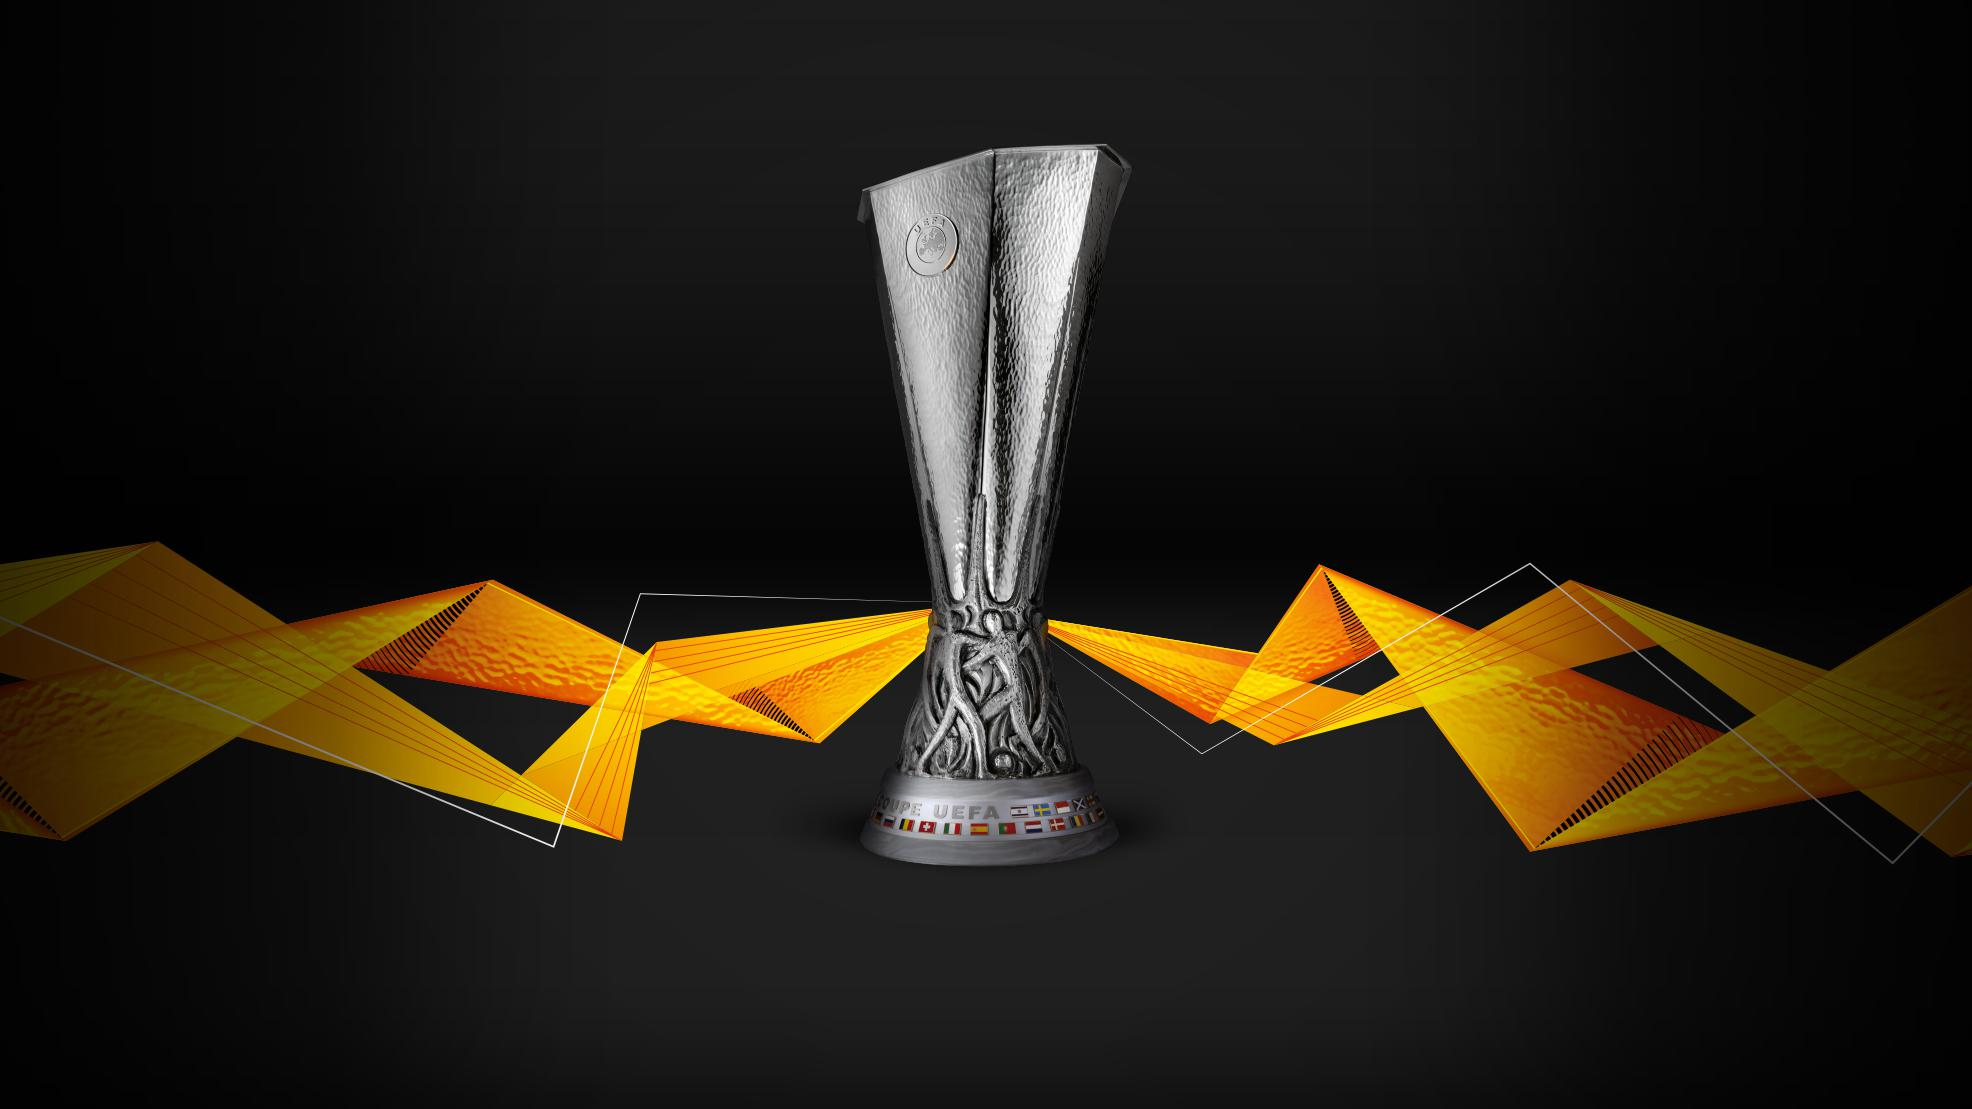 Calendrier Europa League 2021 Europa League to resume on 5 August, final on 21 August | UEFA